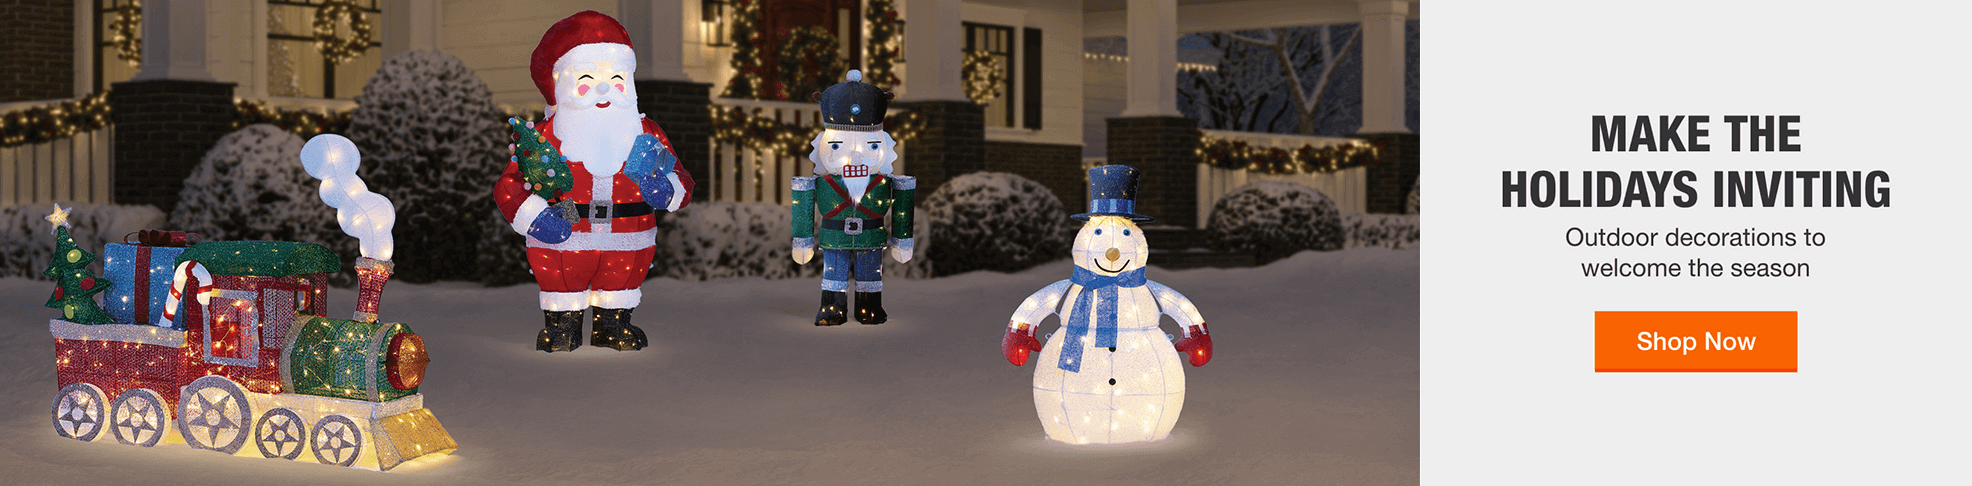 MAKE THE HOLIDAYS INVITING - Outdoor decorations to welcome the season. Shop Now